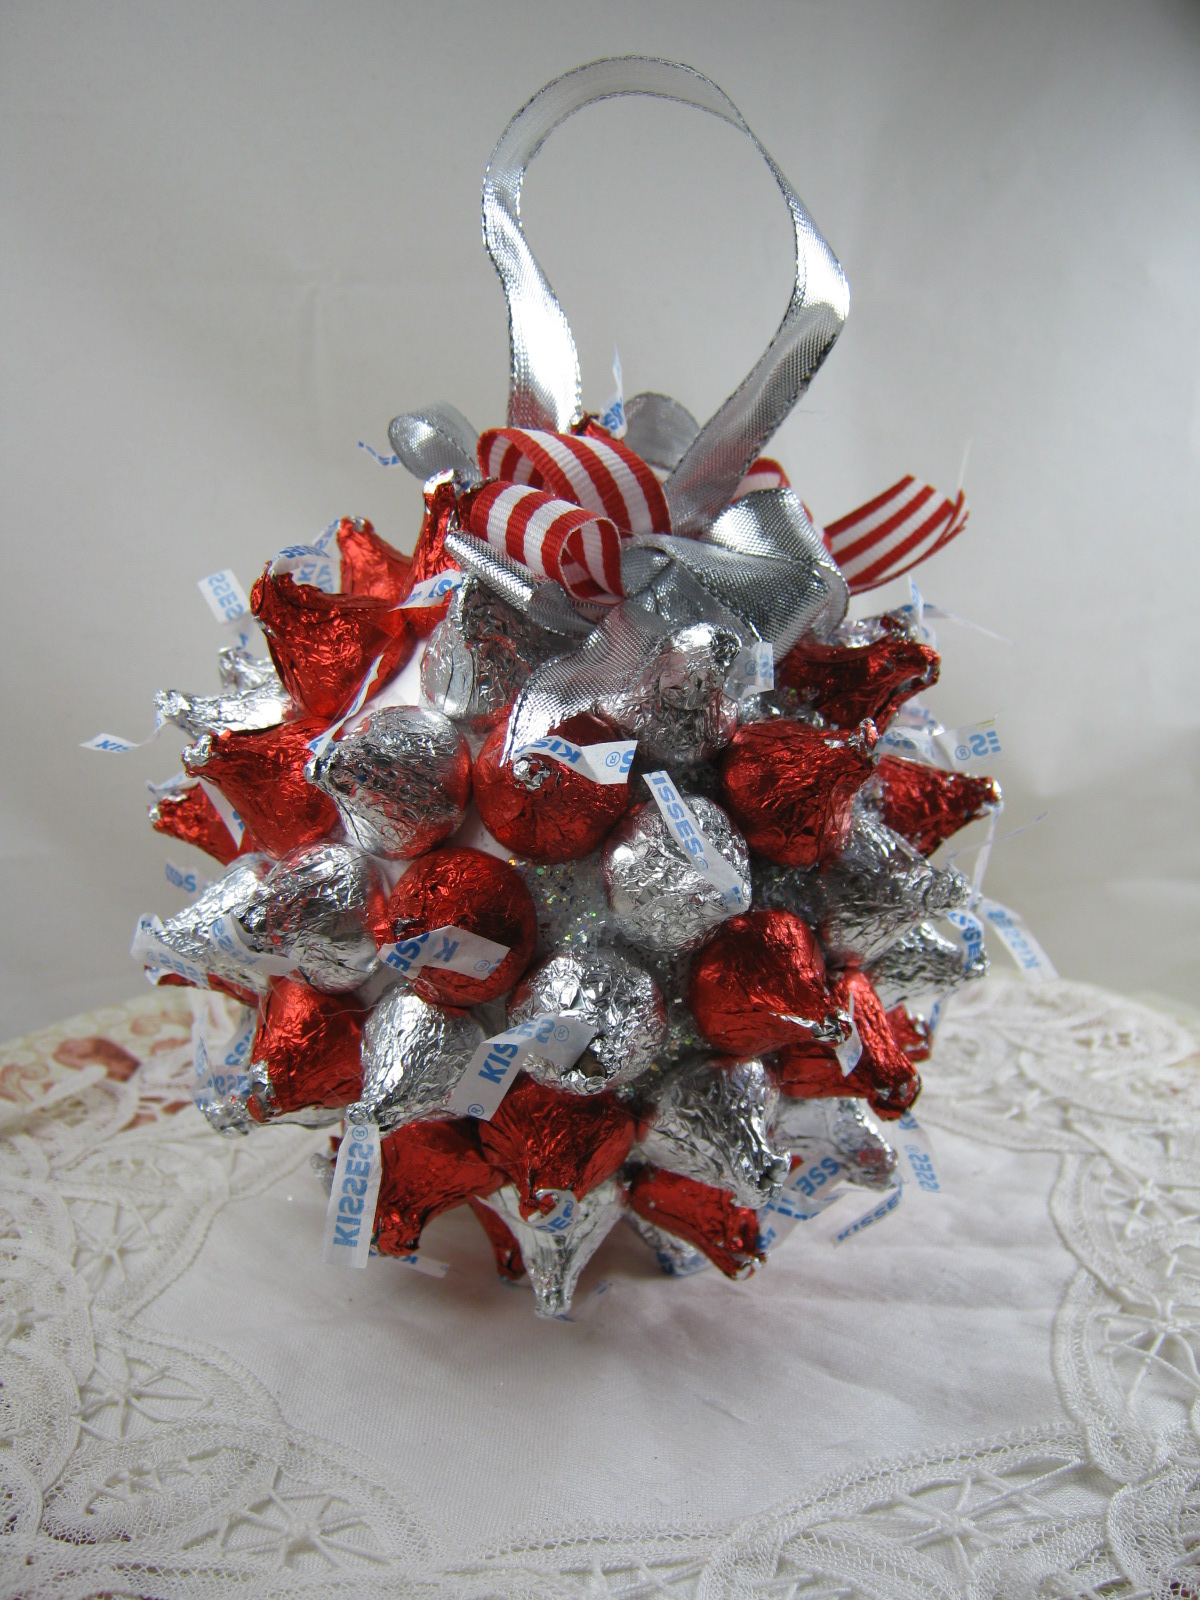 National Craft Month: Chocolate kiss ornament | Smoothfoam